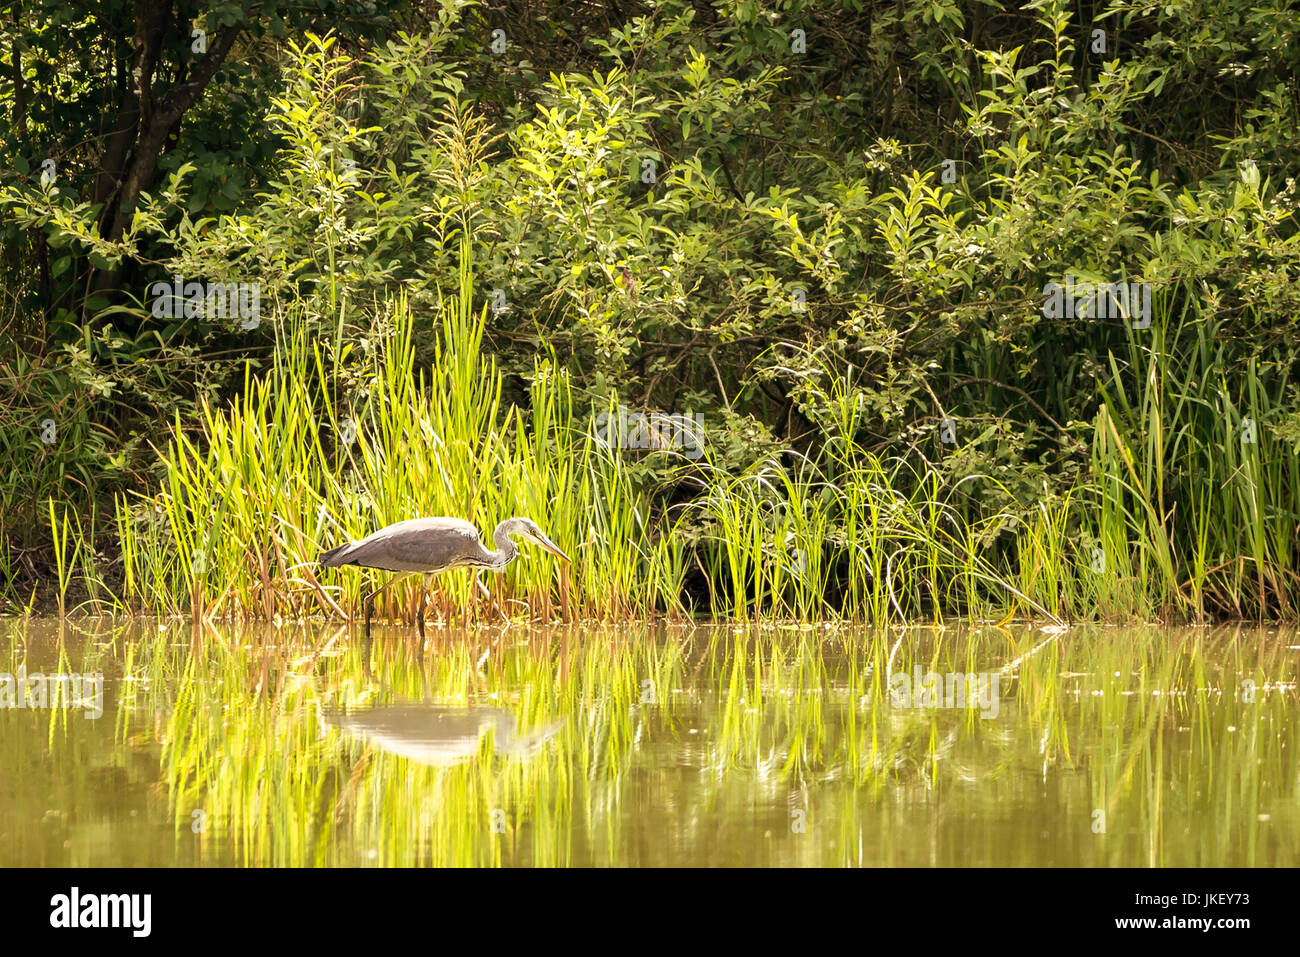 bird small white heron stockfotos bird small white heron bilder alamy. Black Bedroom Furniture Sets. Home Design Ideas